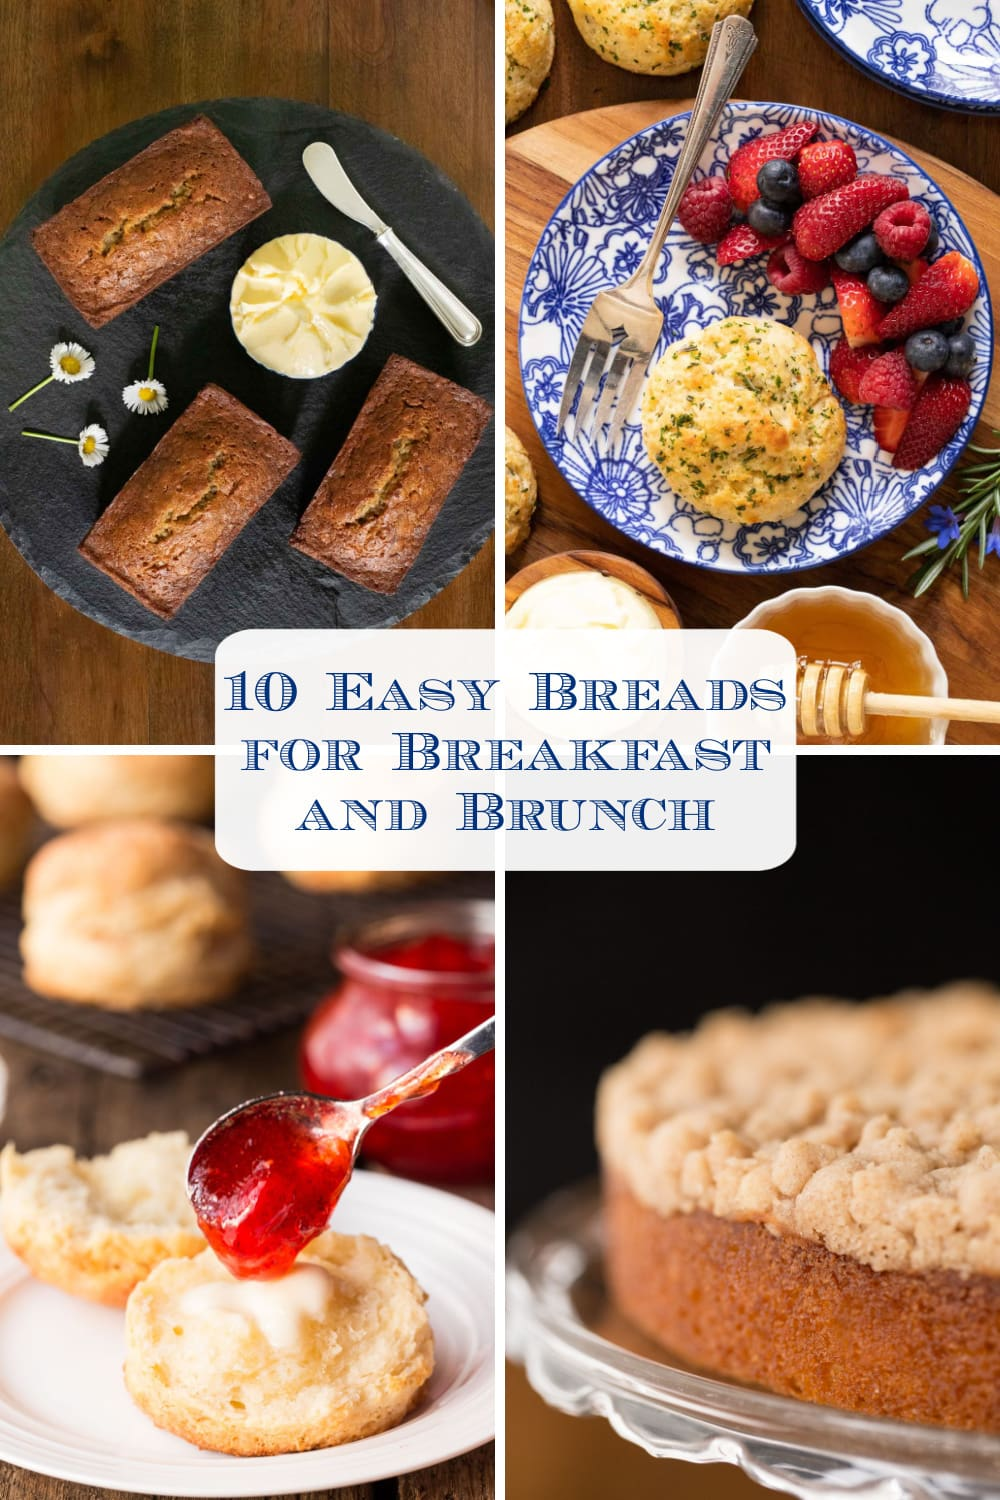 Easy Delicious Bread Recipes for Breakfast and Brunch